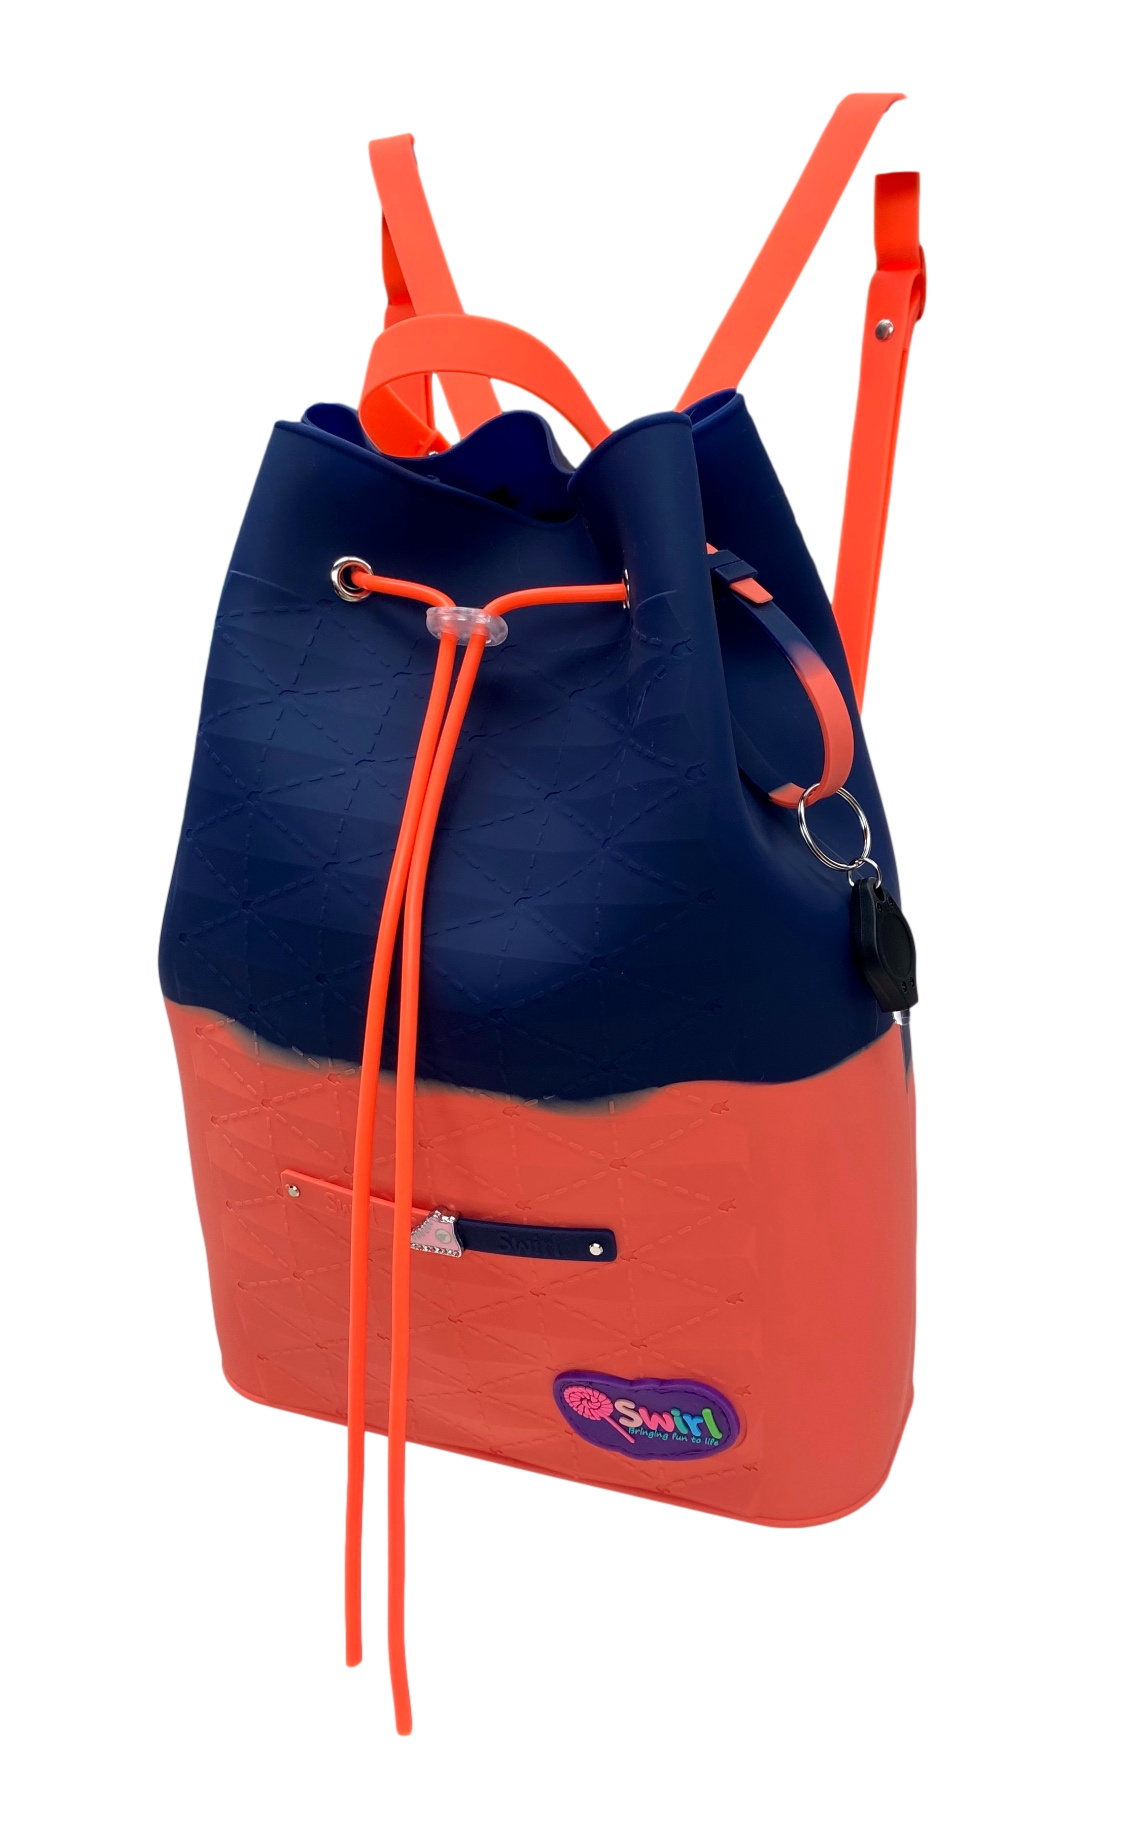 Swirl Coral Reef Back Pack ©Swirl SA (Pty) Ltd 2020